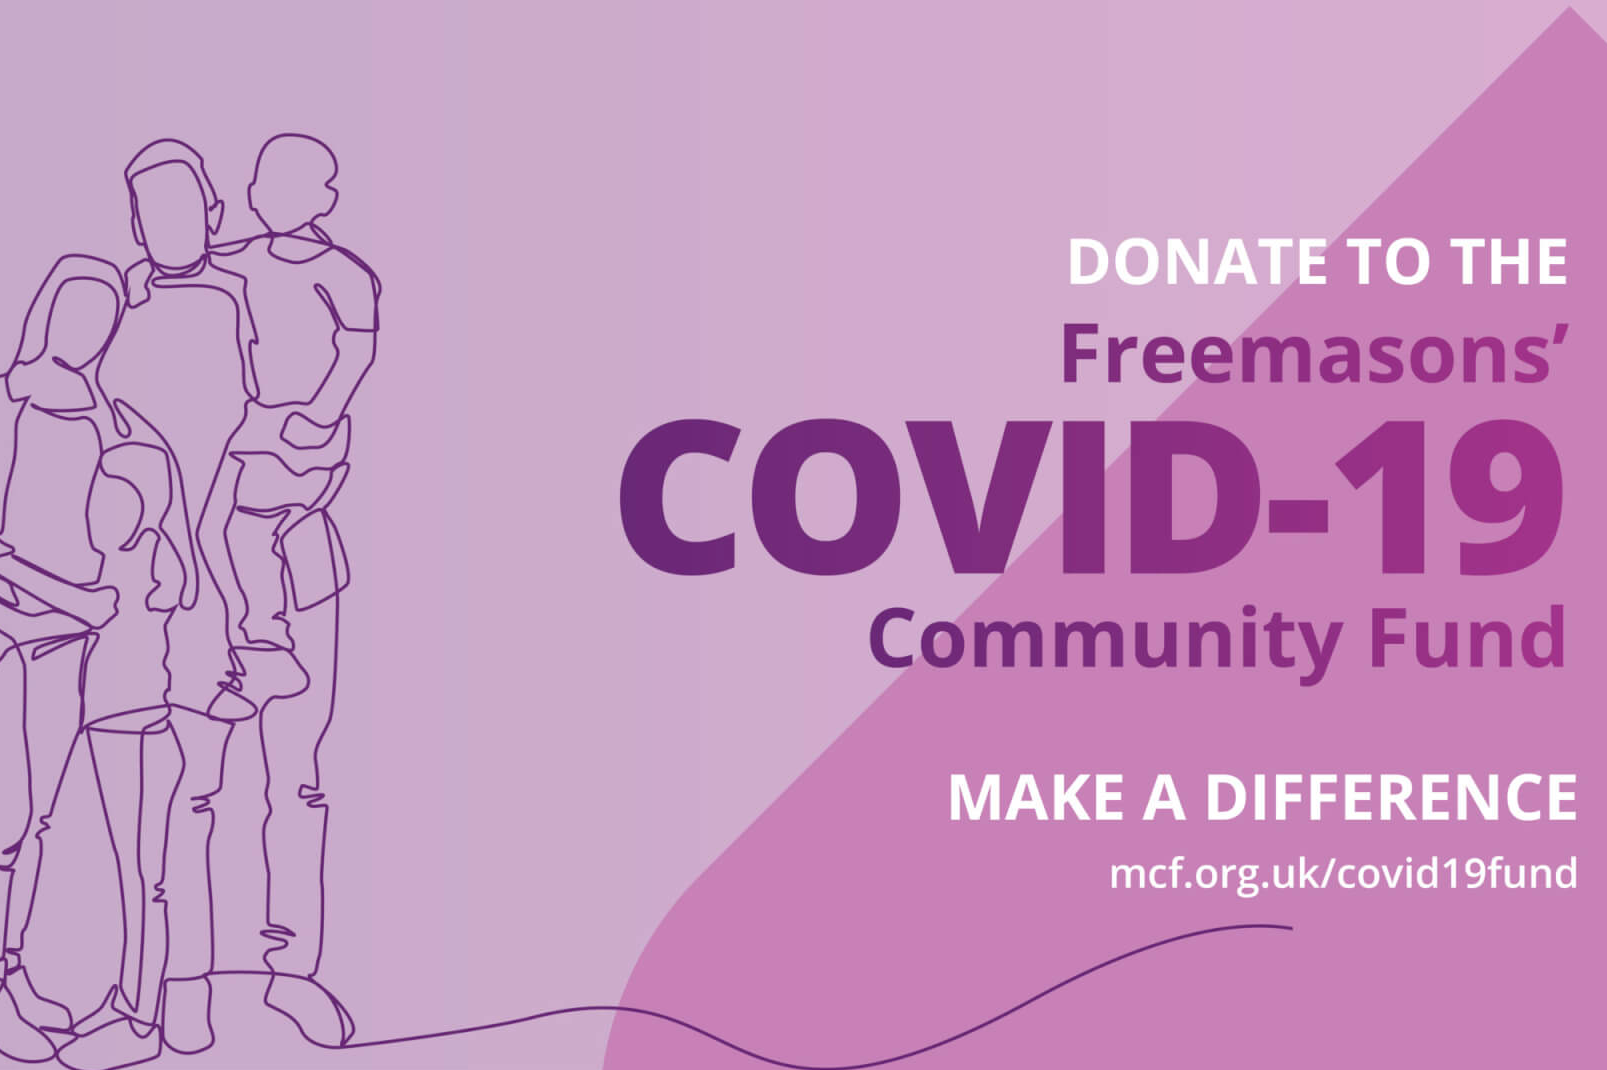 Freemasons' COVID-19 Community Fund